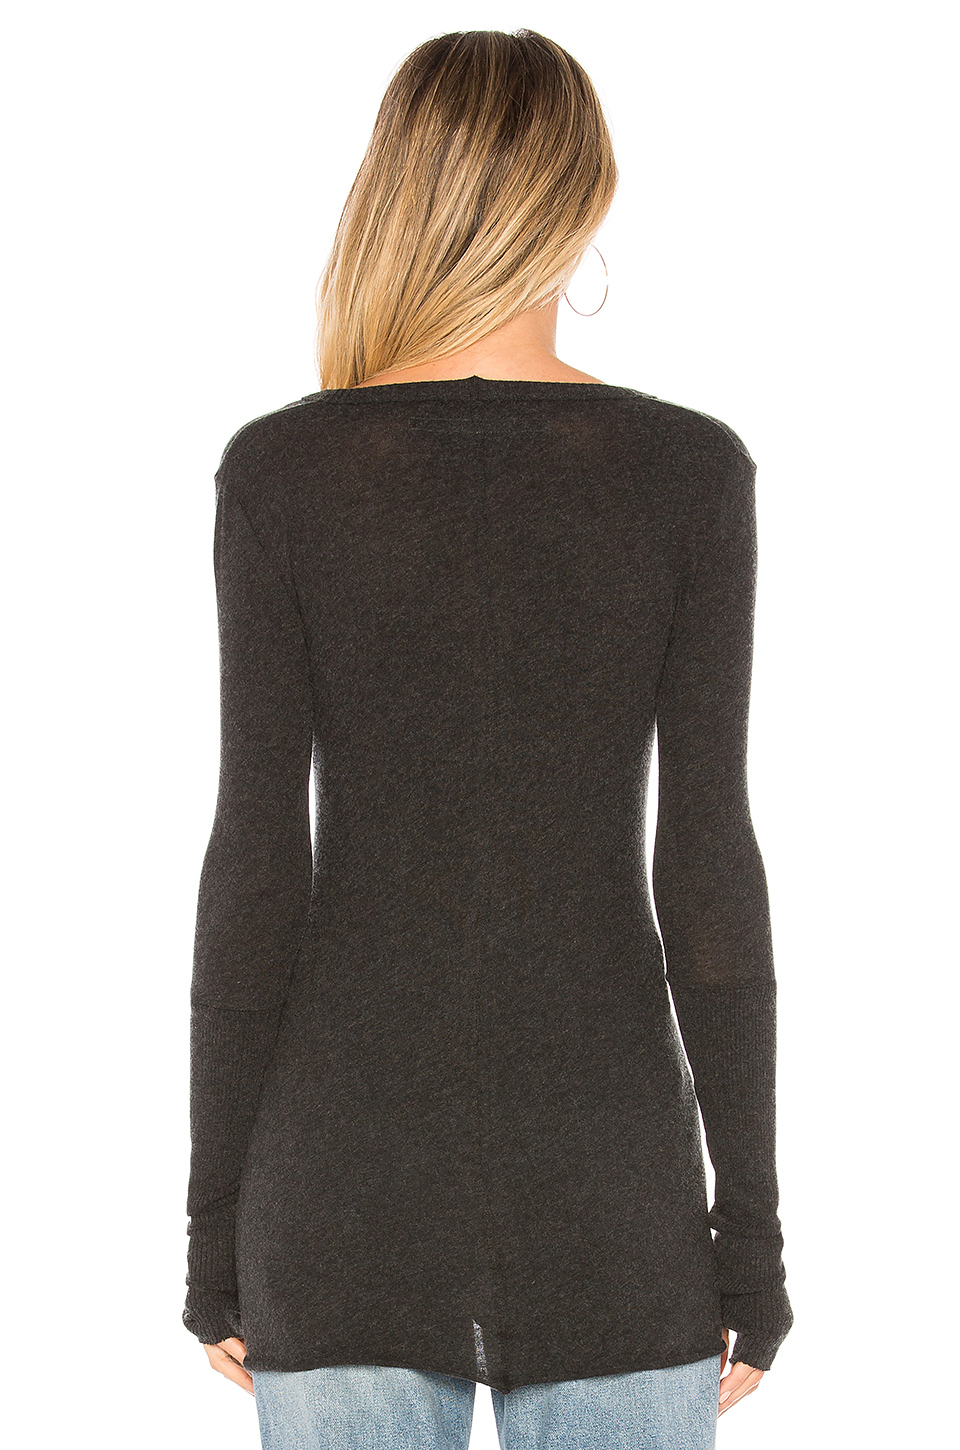 Enza Costa Cashmere Fitted Cuffed V Neck Sweater in Charcoal